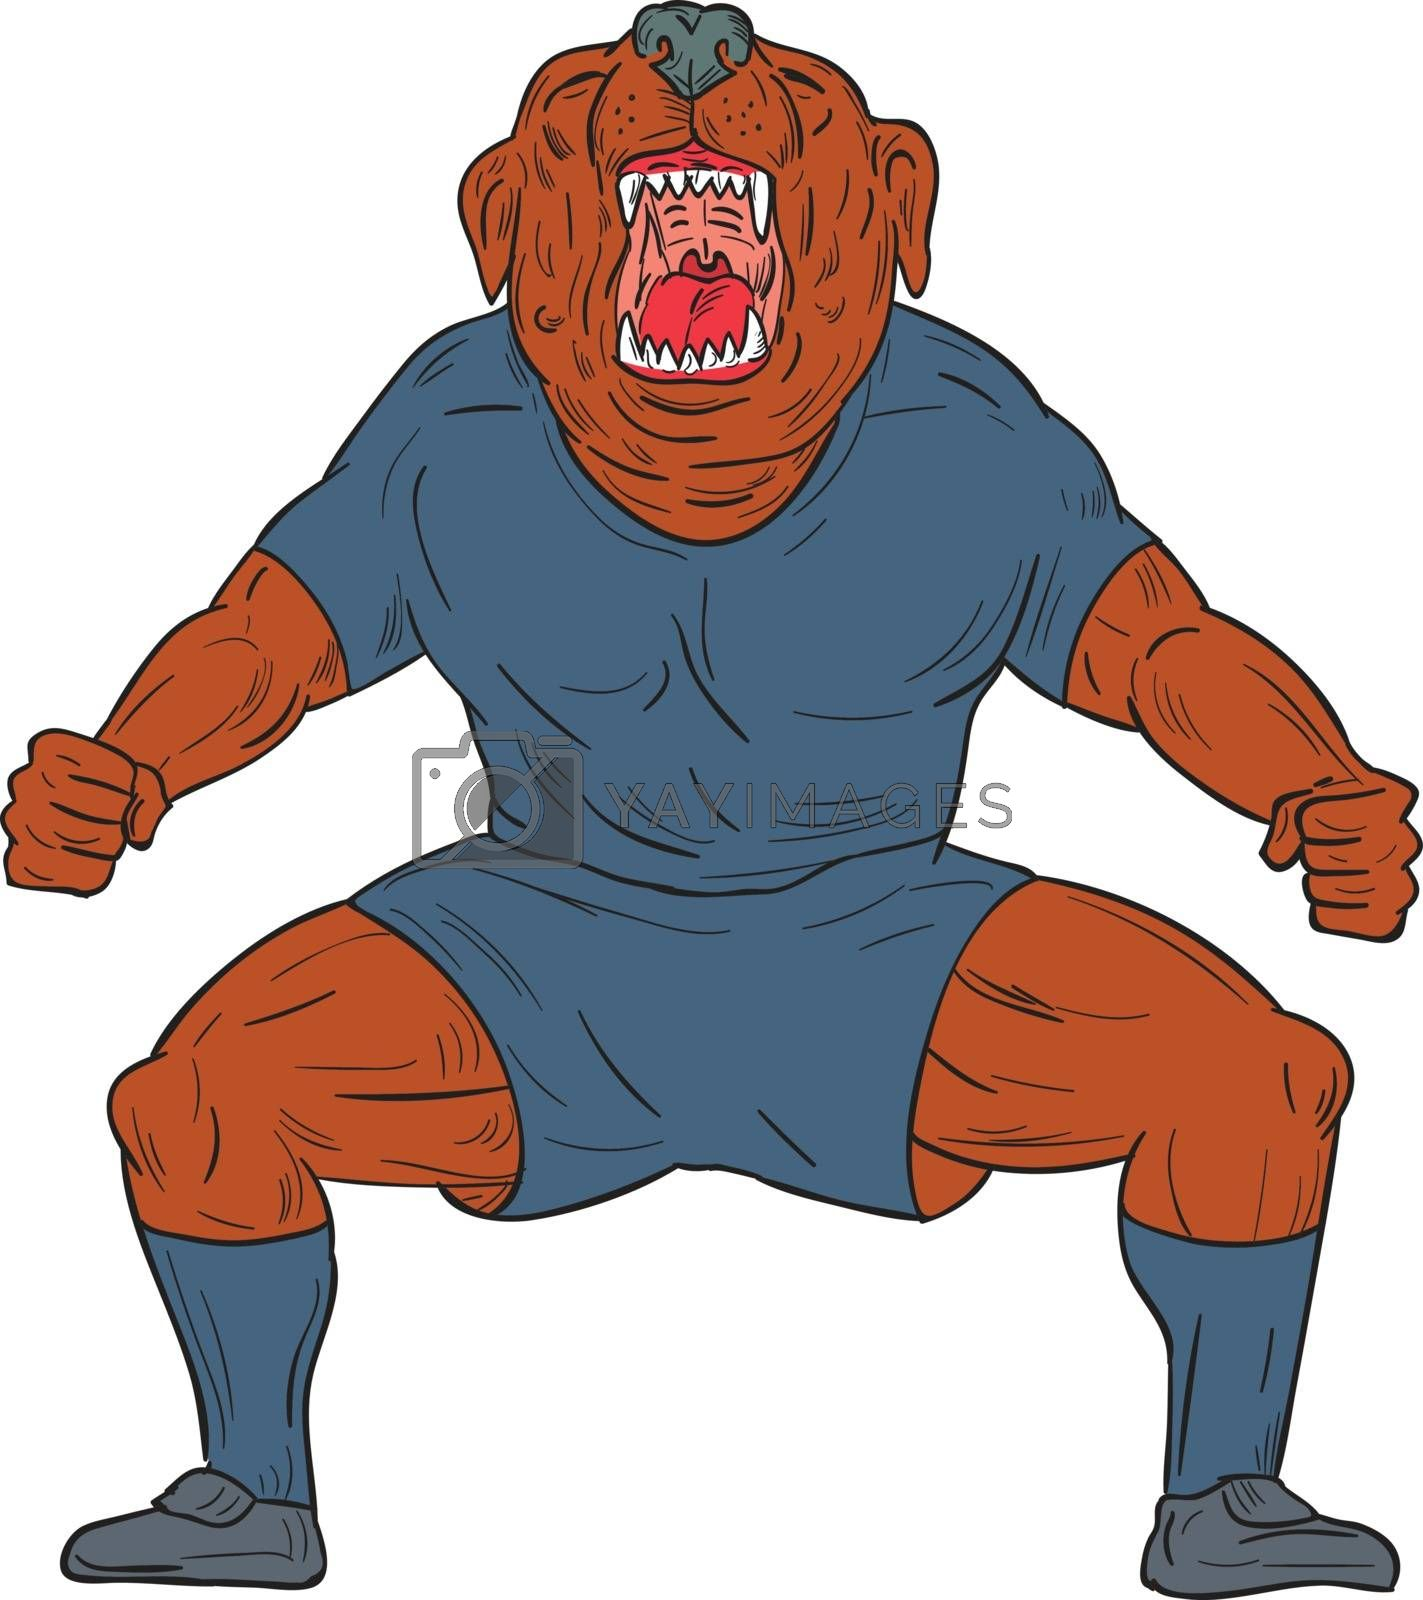 Illustration of a bulldog footballer with knees bent and mouth wide open celebrating haka victory goal viewed from front set on isolated white background done in cartoon style.